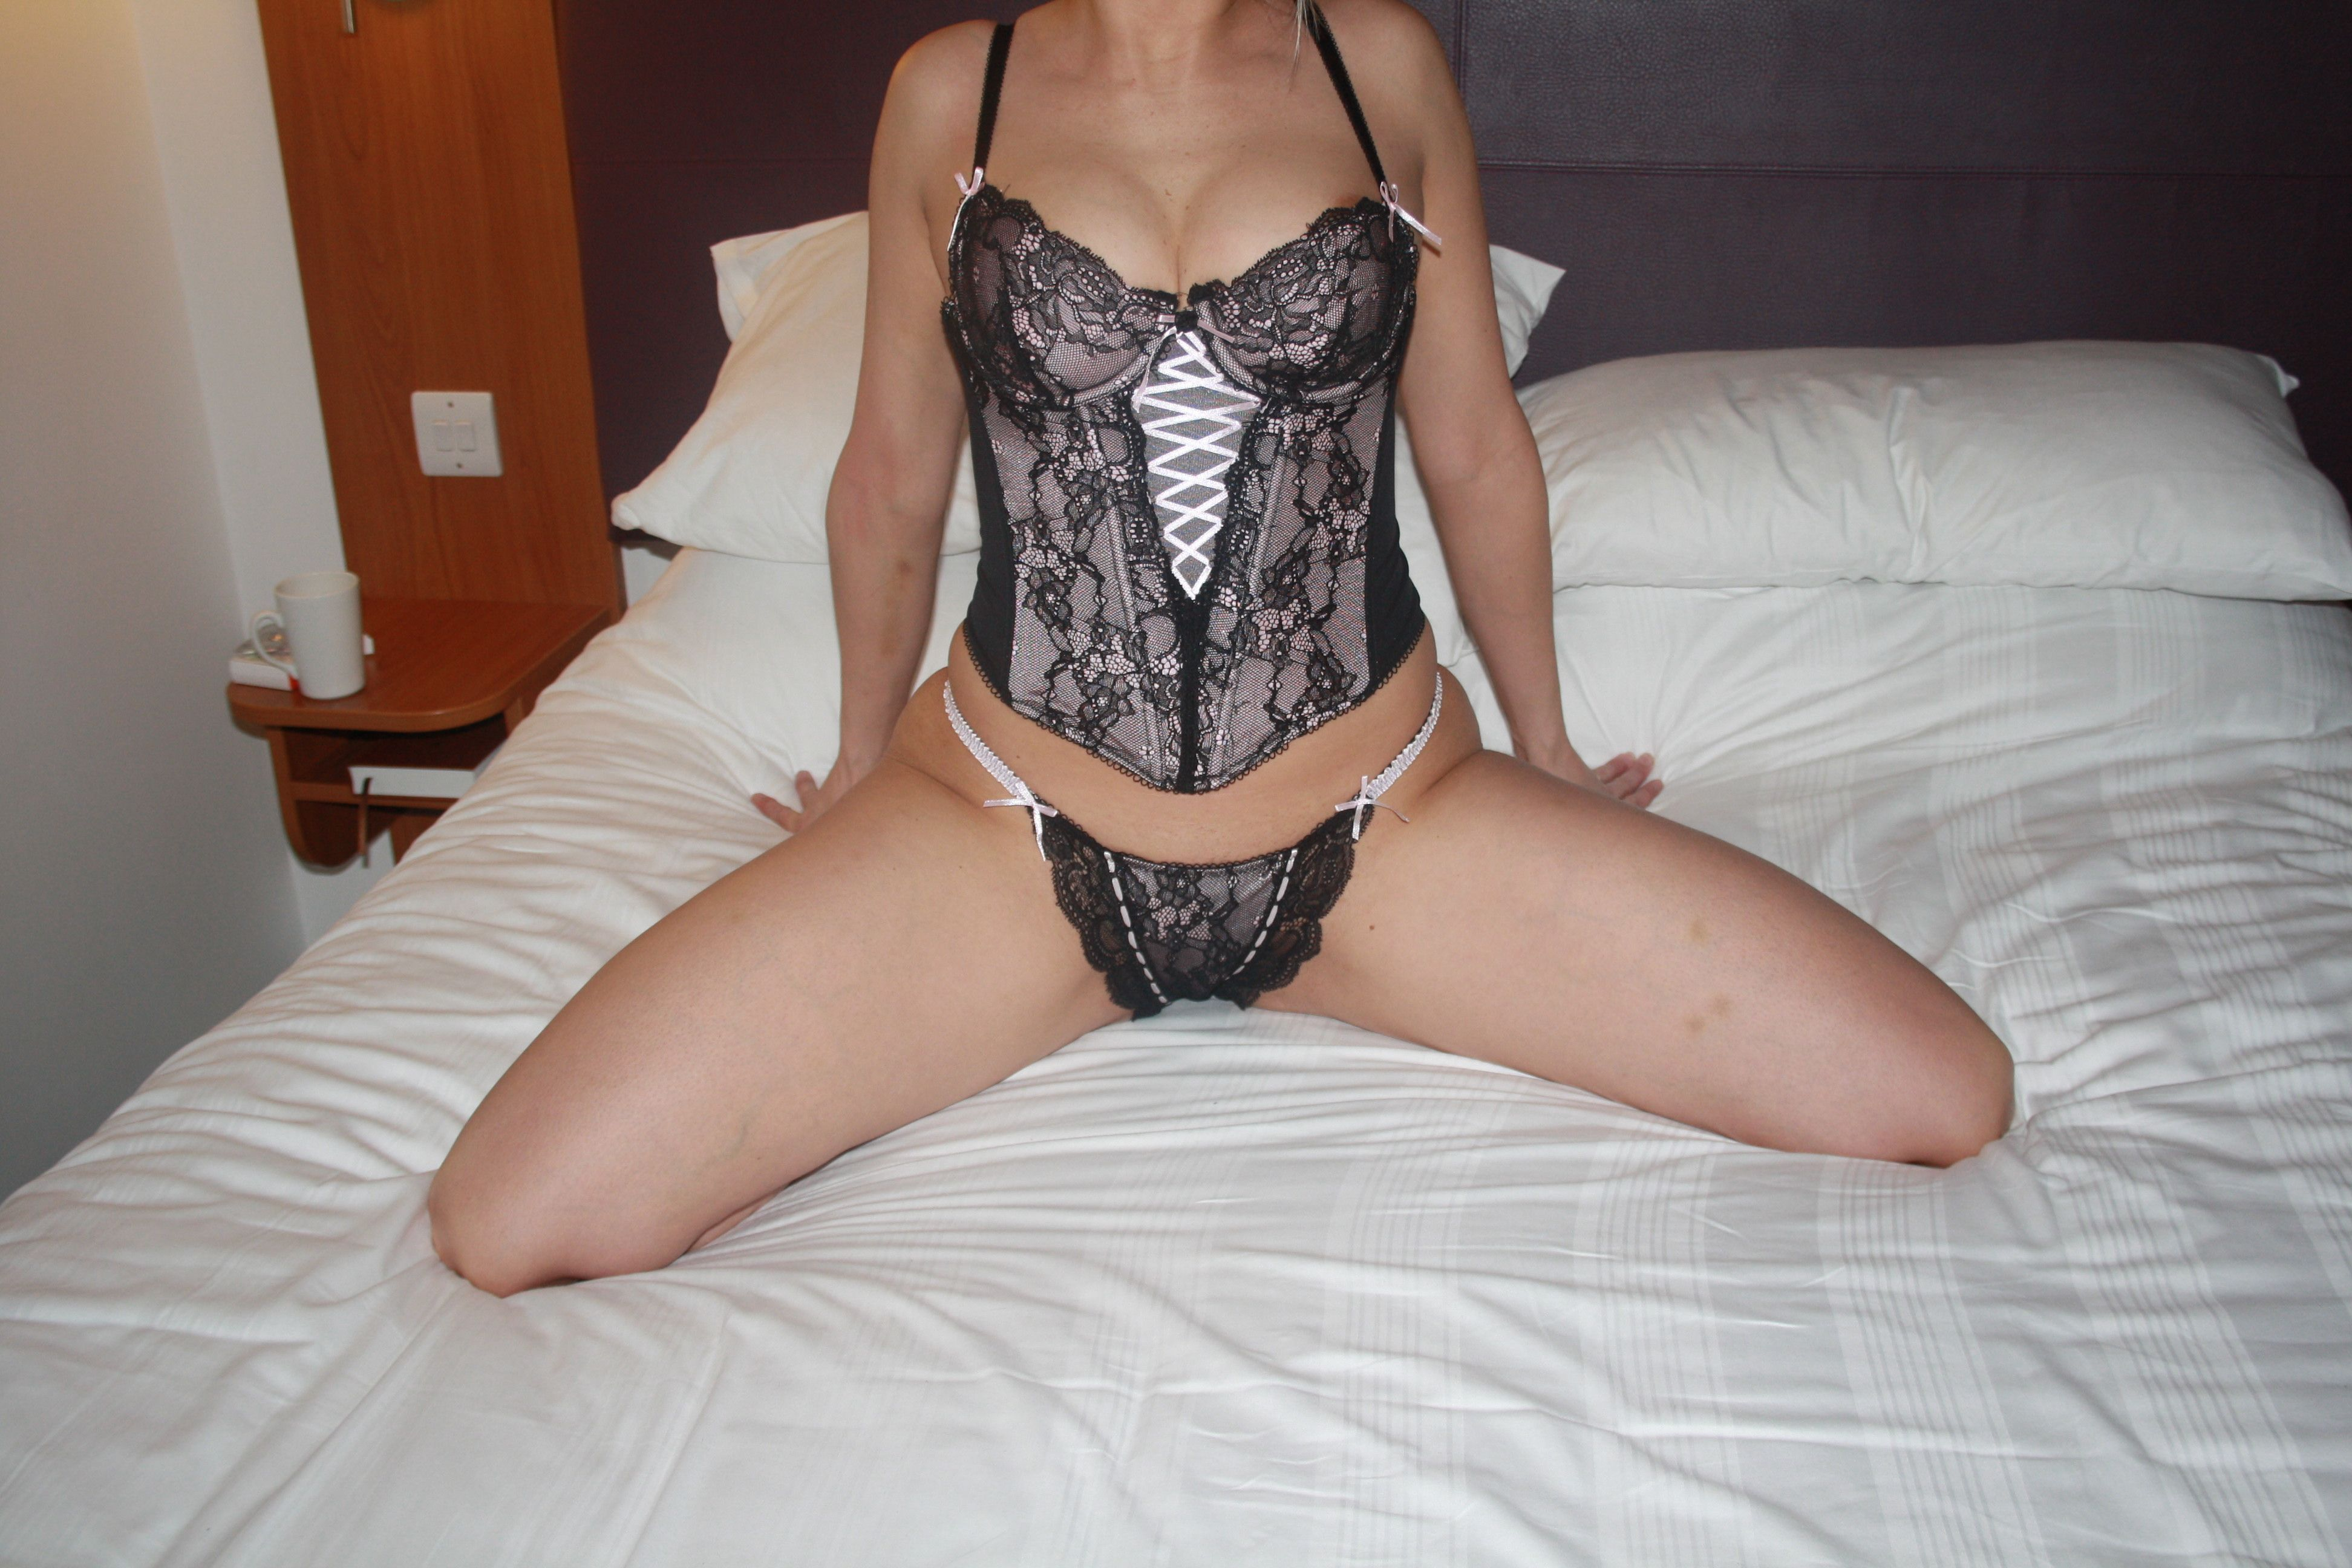 Independent female escorts providing professional escorting services